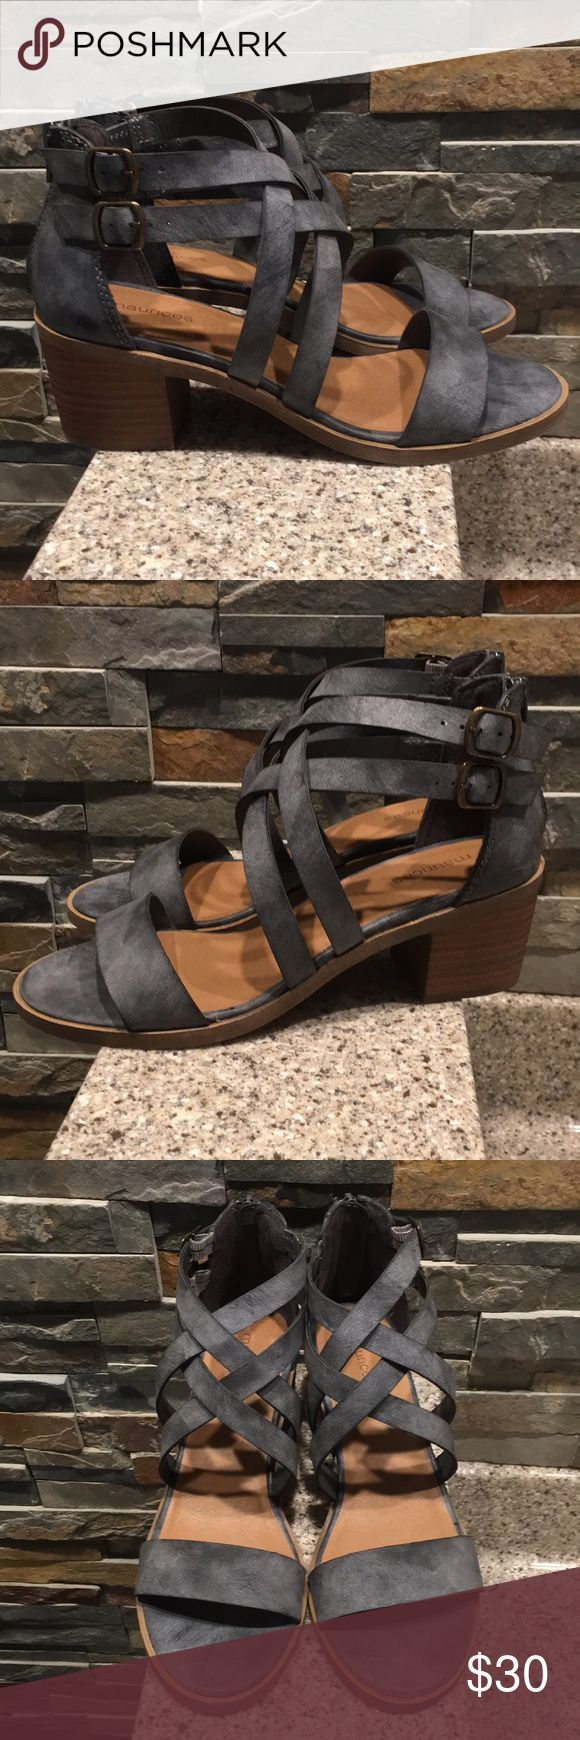 """‼️CCO‼️ 🆕 Maurices Heels Heel height is 2"""", bought but never wore so time to sell. Maurices Shoes Heels"""